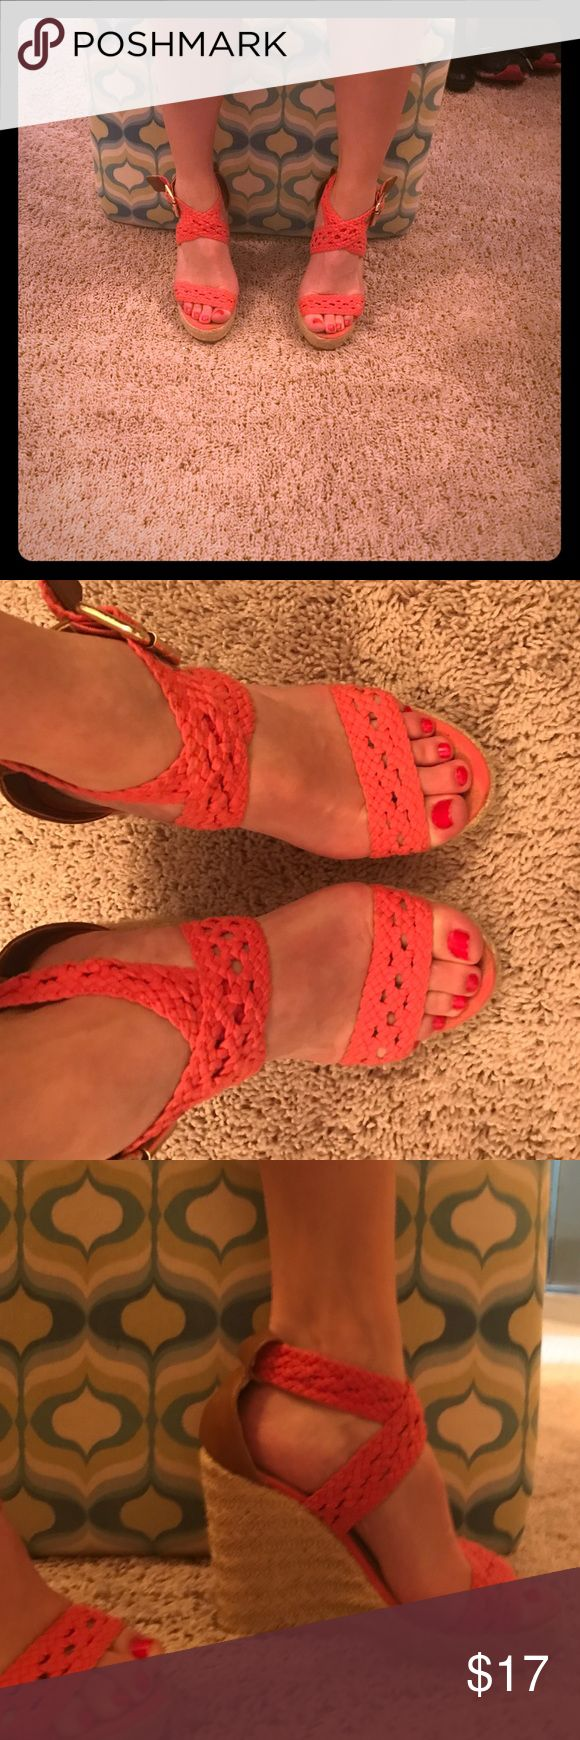 Steve Madden Coral Wedges STEAL!! Gorgeous Wedges! These shoes have are in EUC. There are no signs of wear except for small toe prints. You cannot see them while wearing the shoes. Steve Madden Shoes Wedges